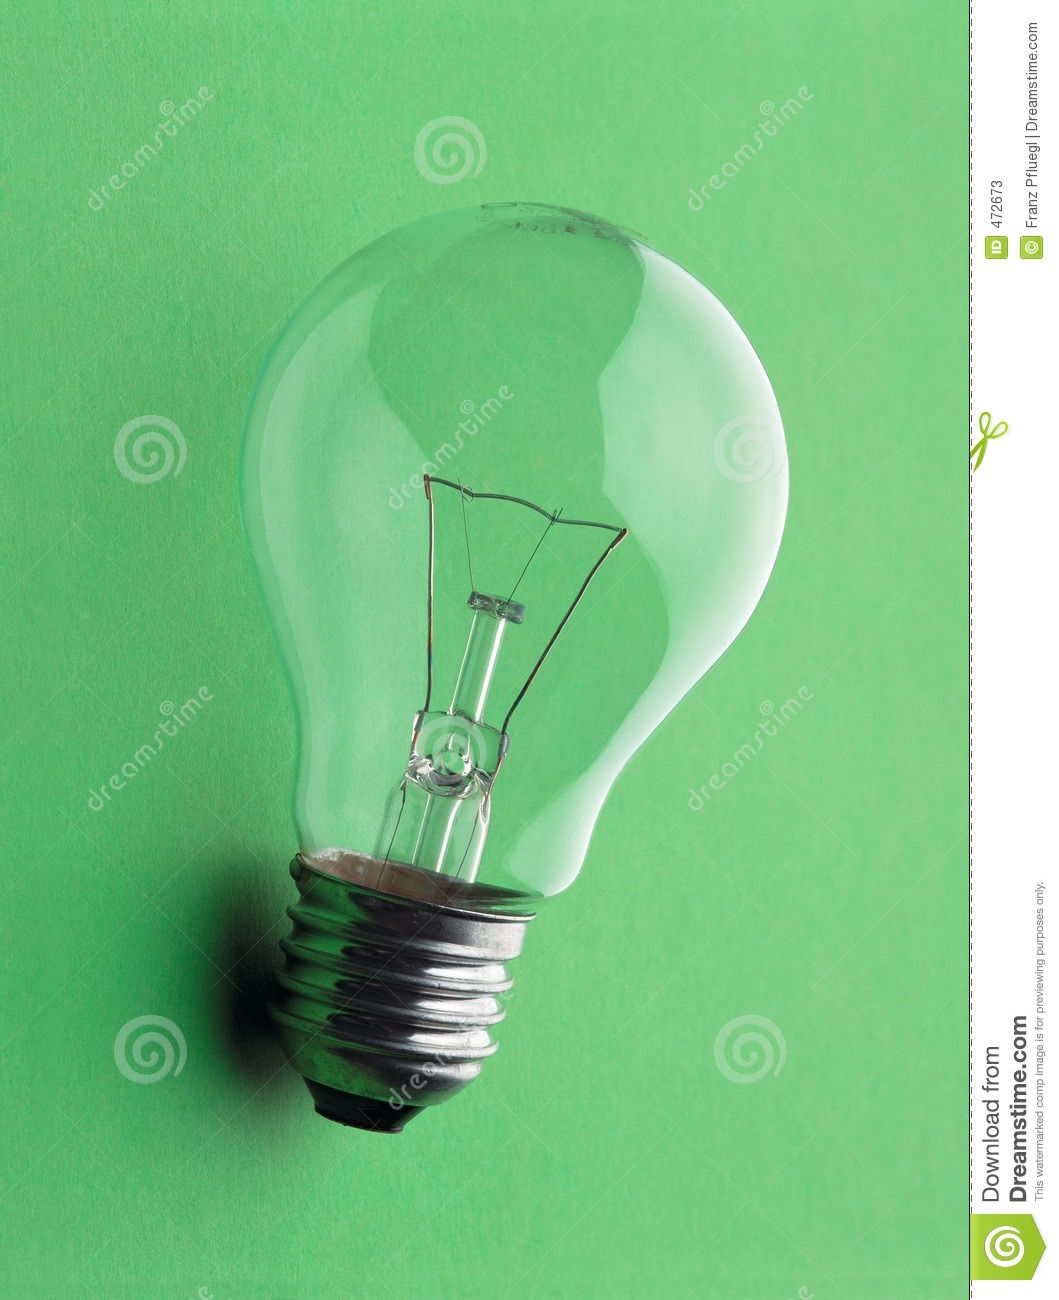 Download Electric lamp stock image. Image of clear, think, pfluegl - 472673